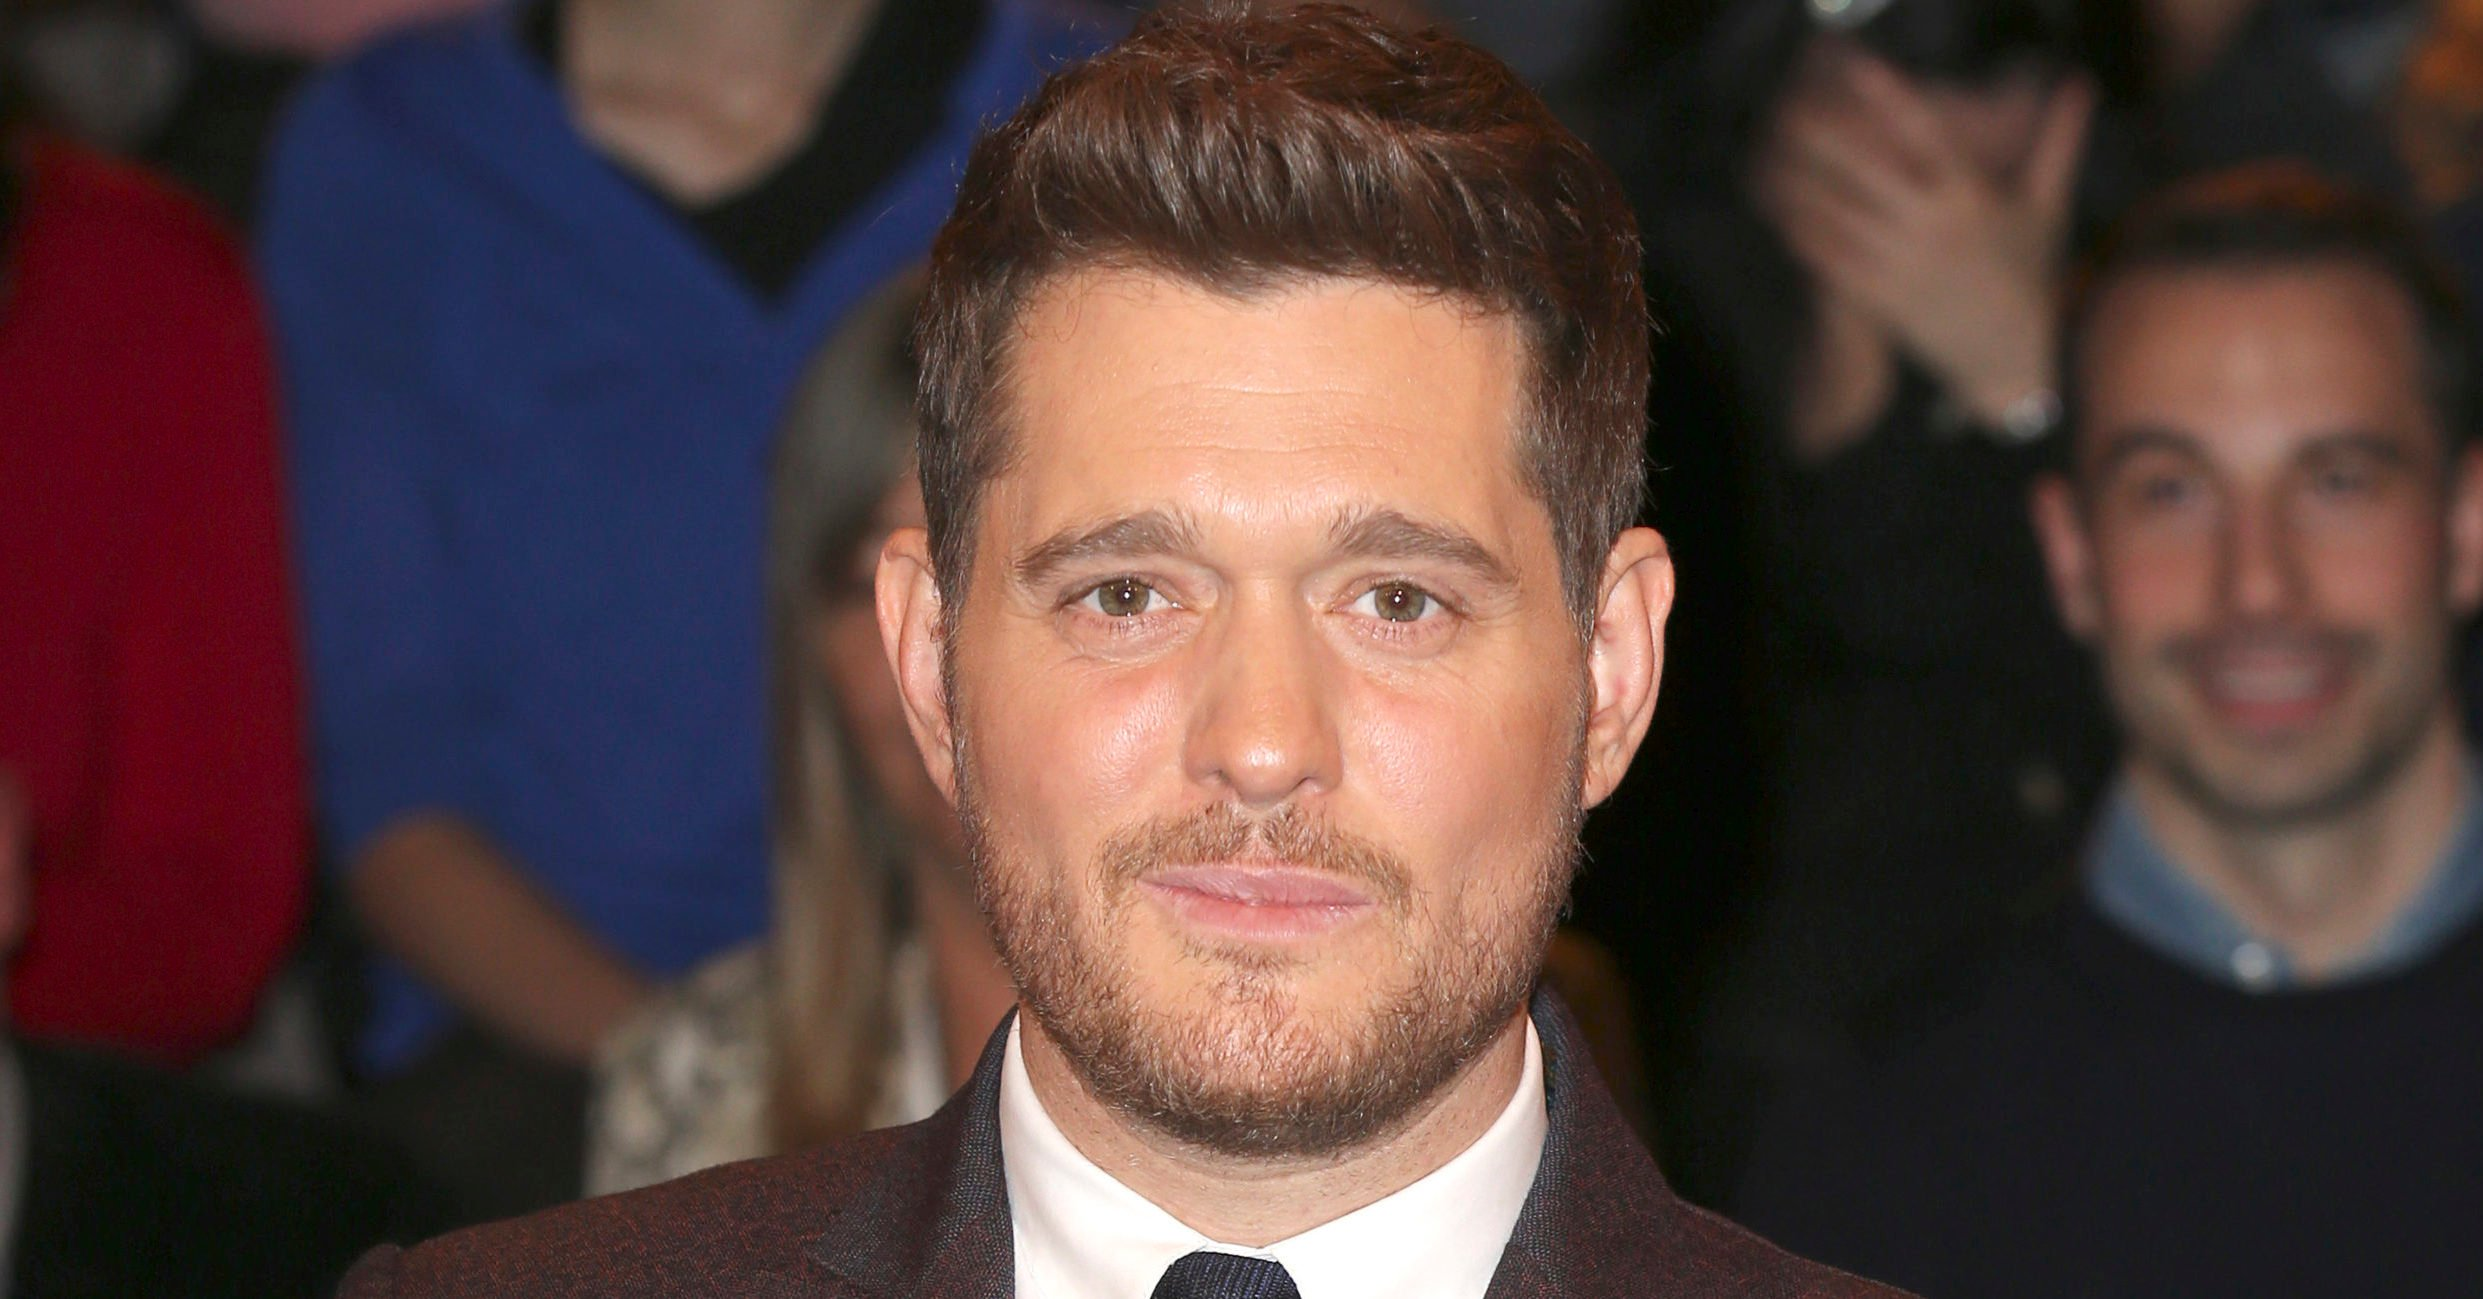 Michael Buble gives fans a rare glimpse of daughter Vida as the pair sing together in lockdown video